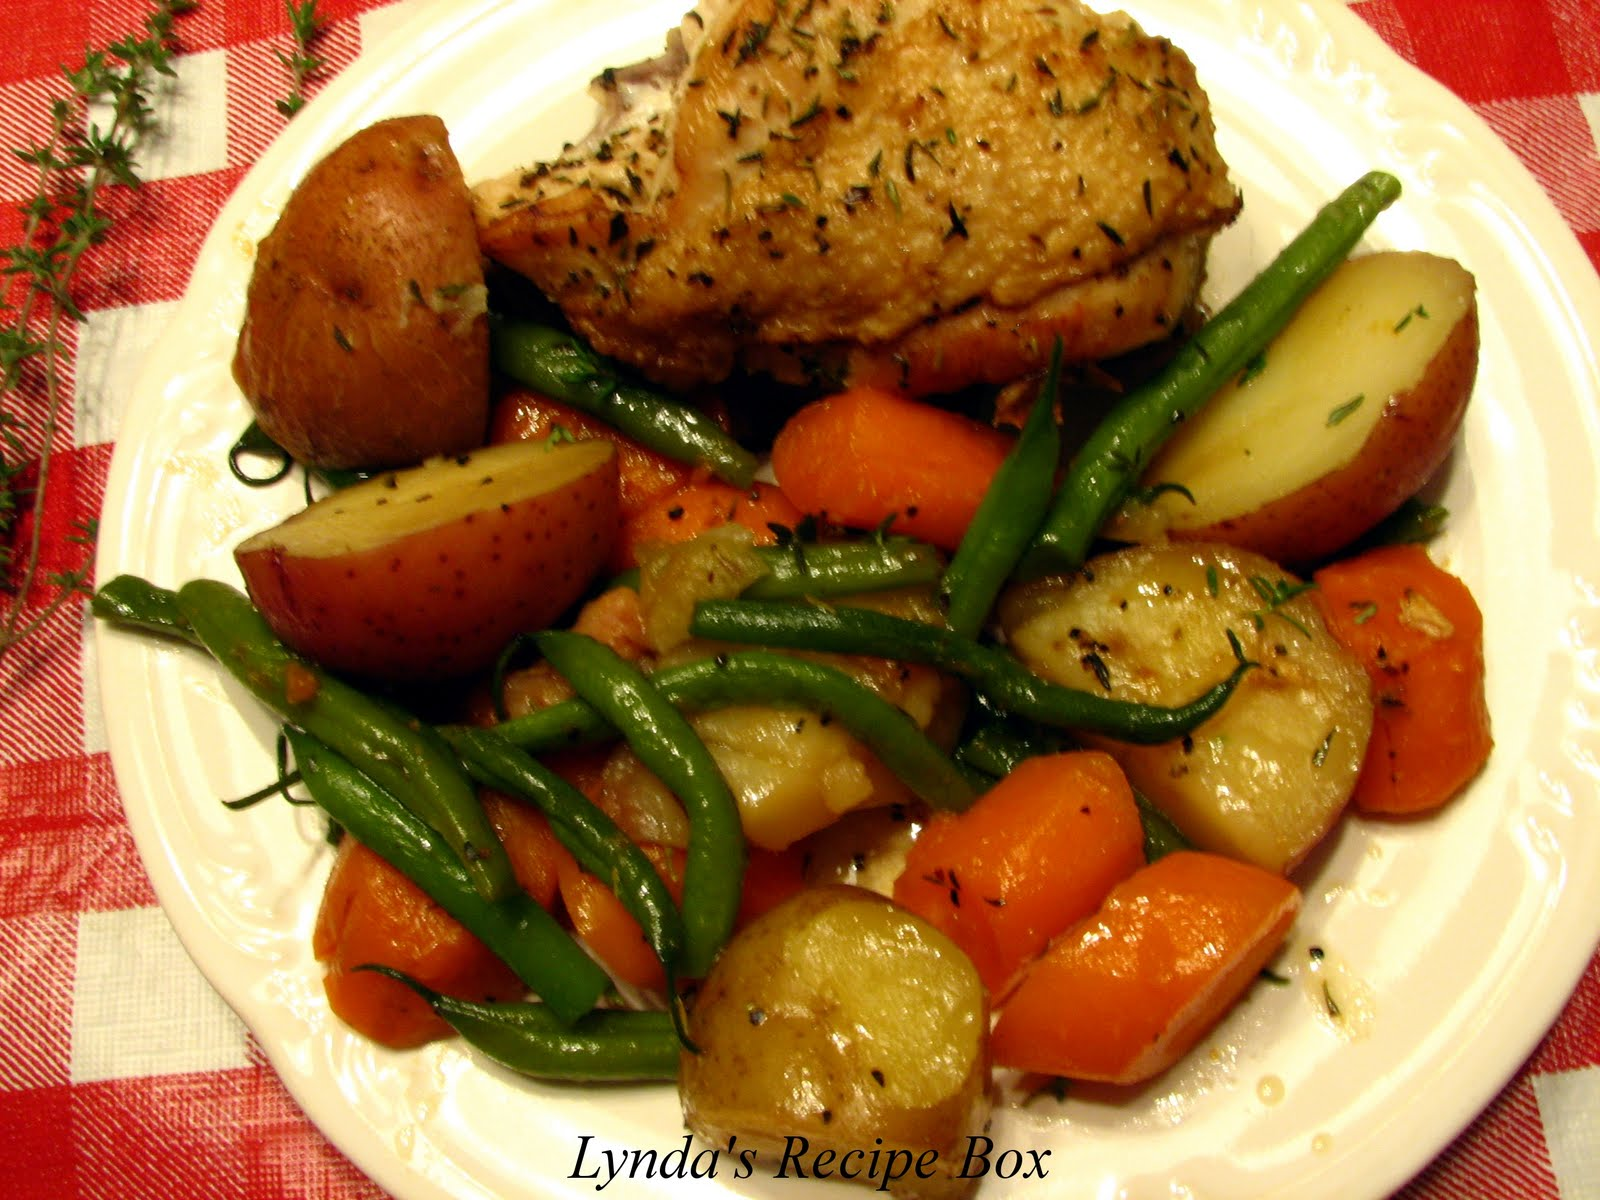 14. Braised Chicken and Vegetable Skillet Dinner